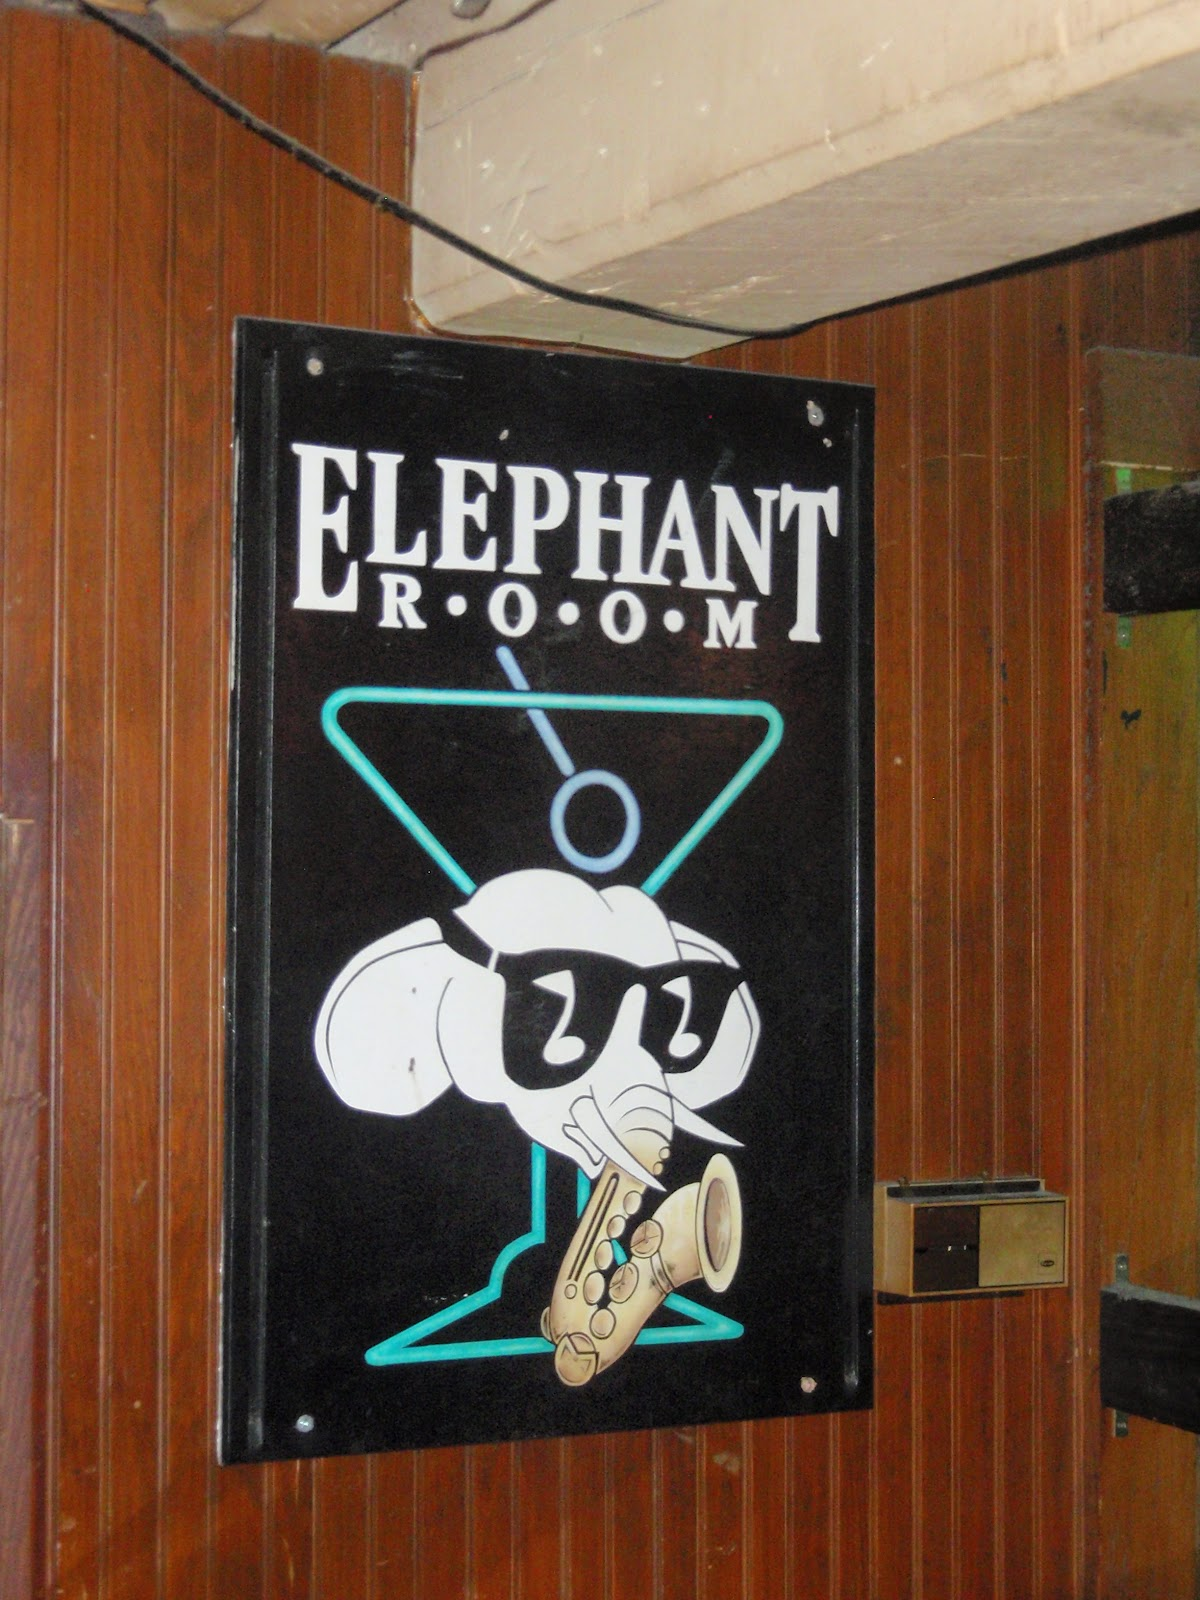 Clanging Bell: A Little Jazz, a Little Elephant Room and a Lot of ...